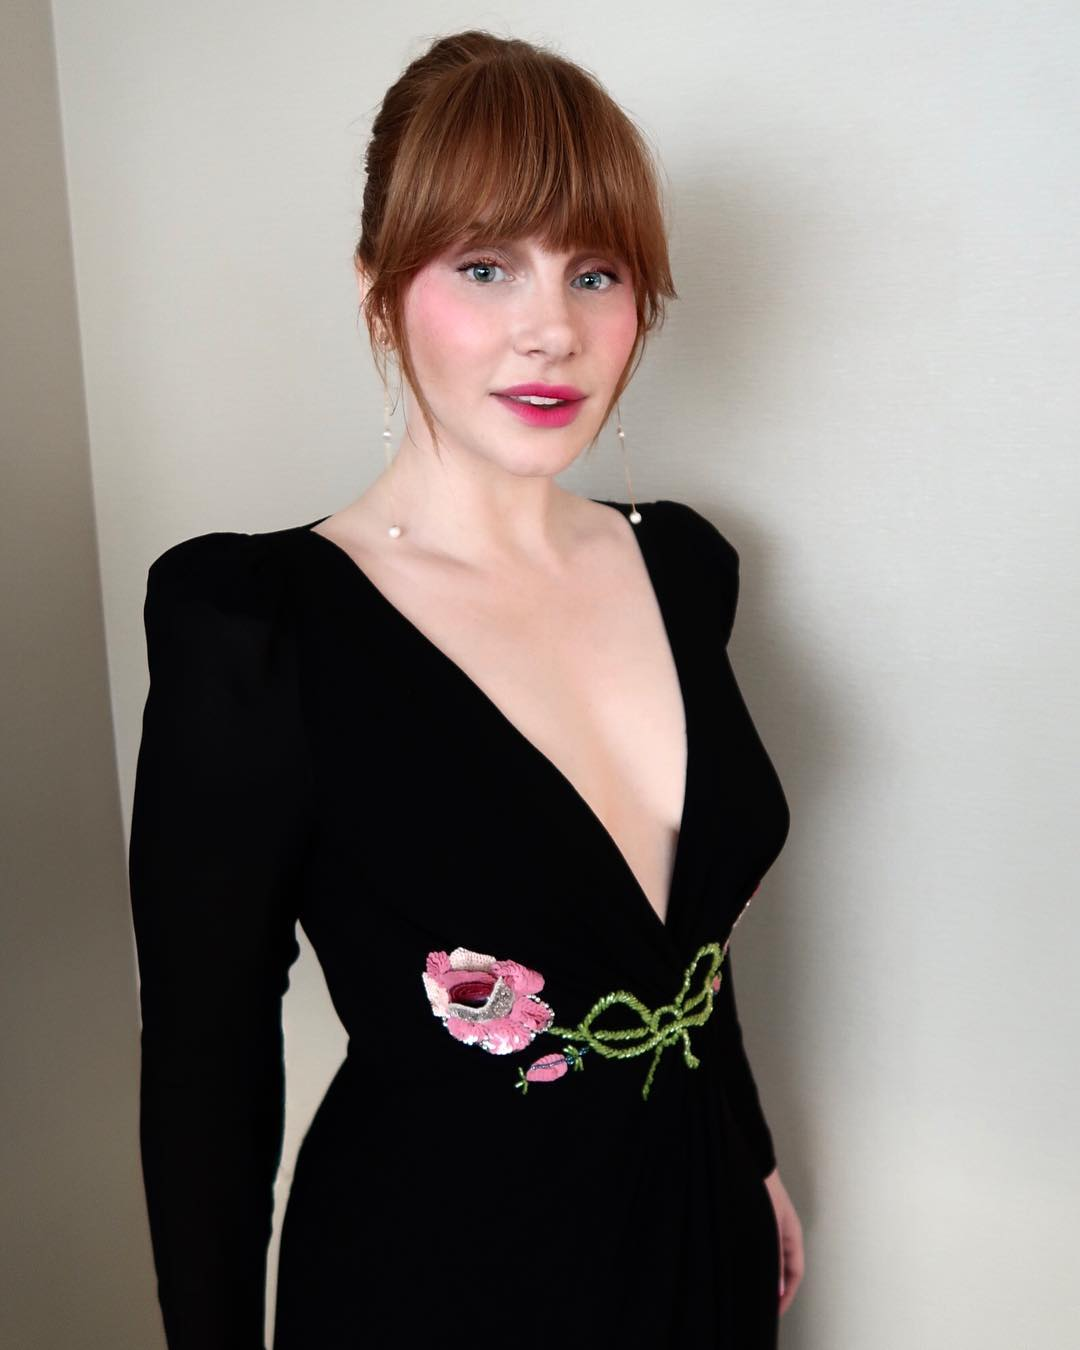 bryce dallas howard sexy pic